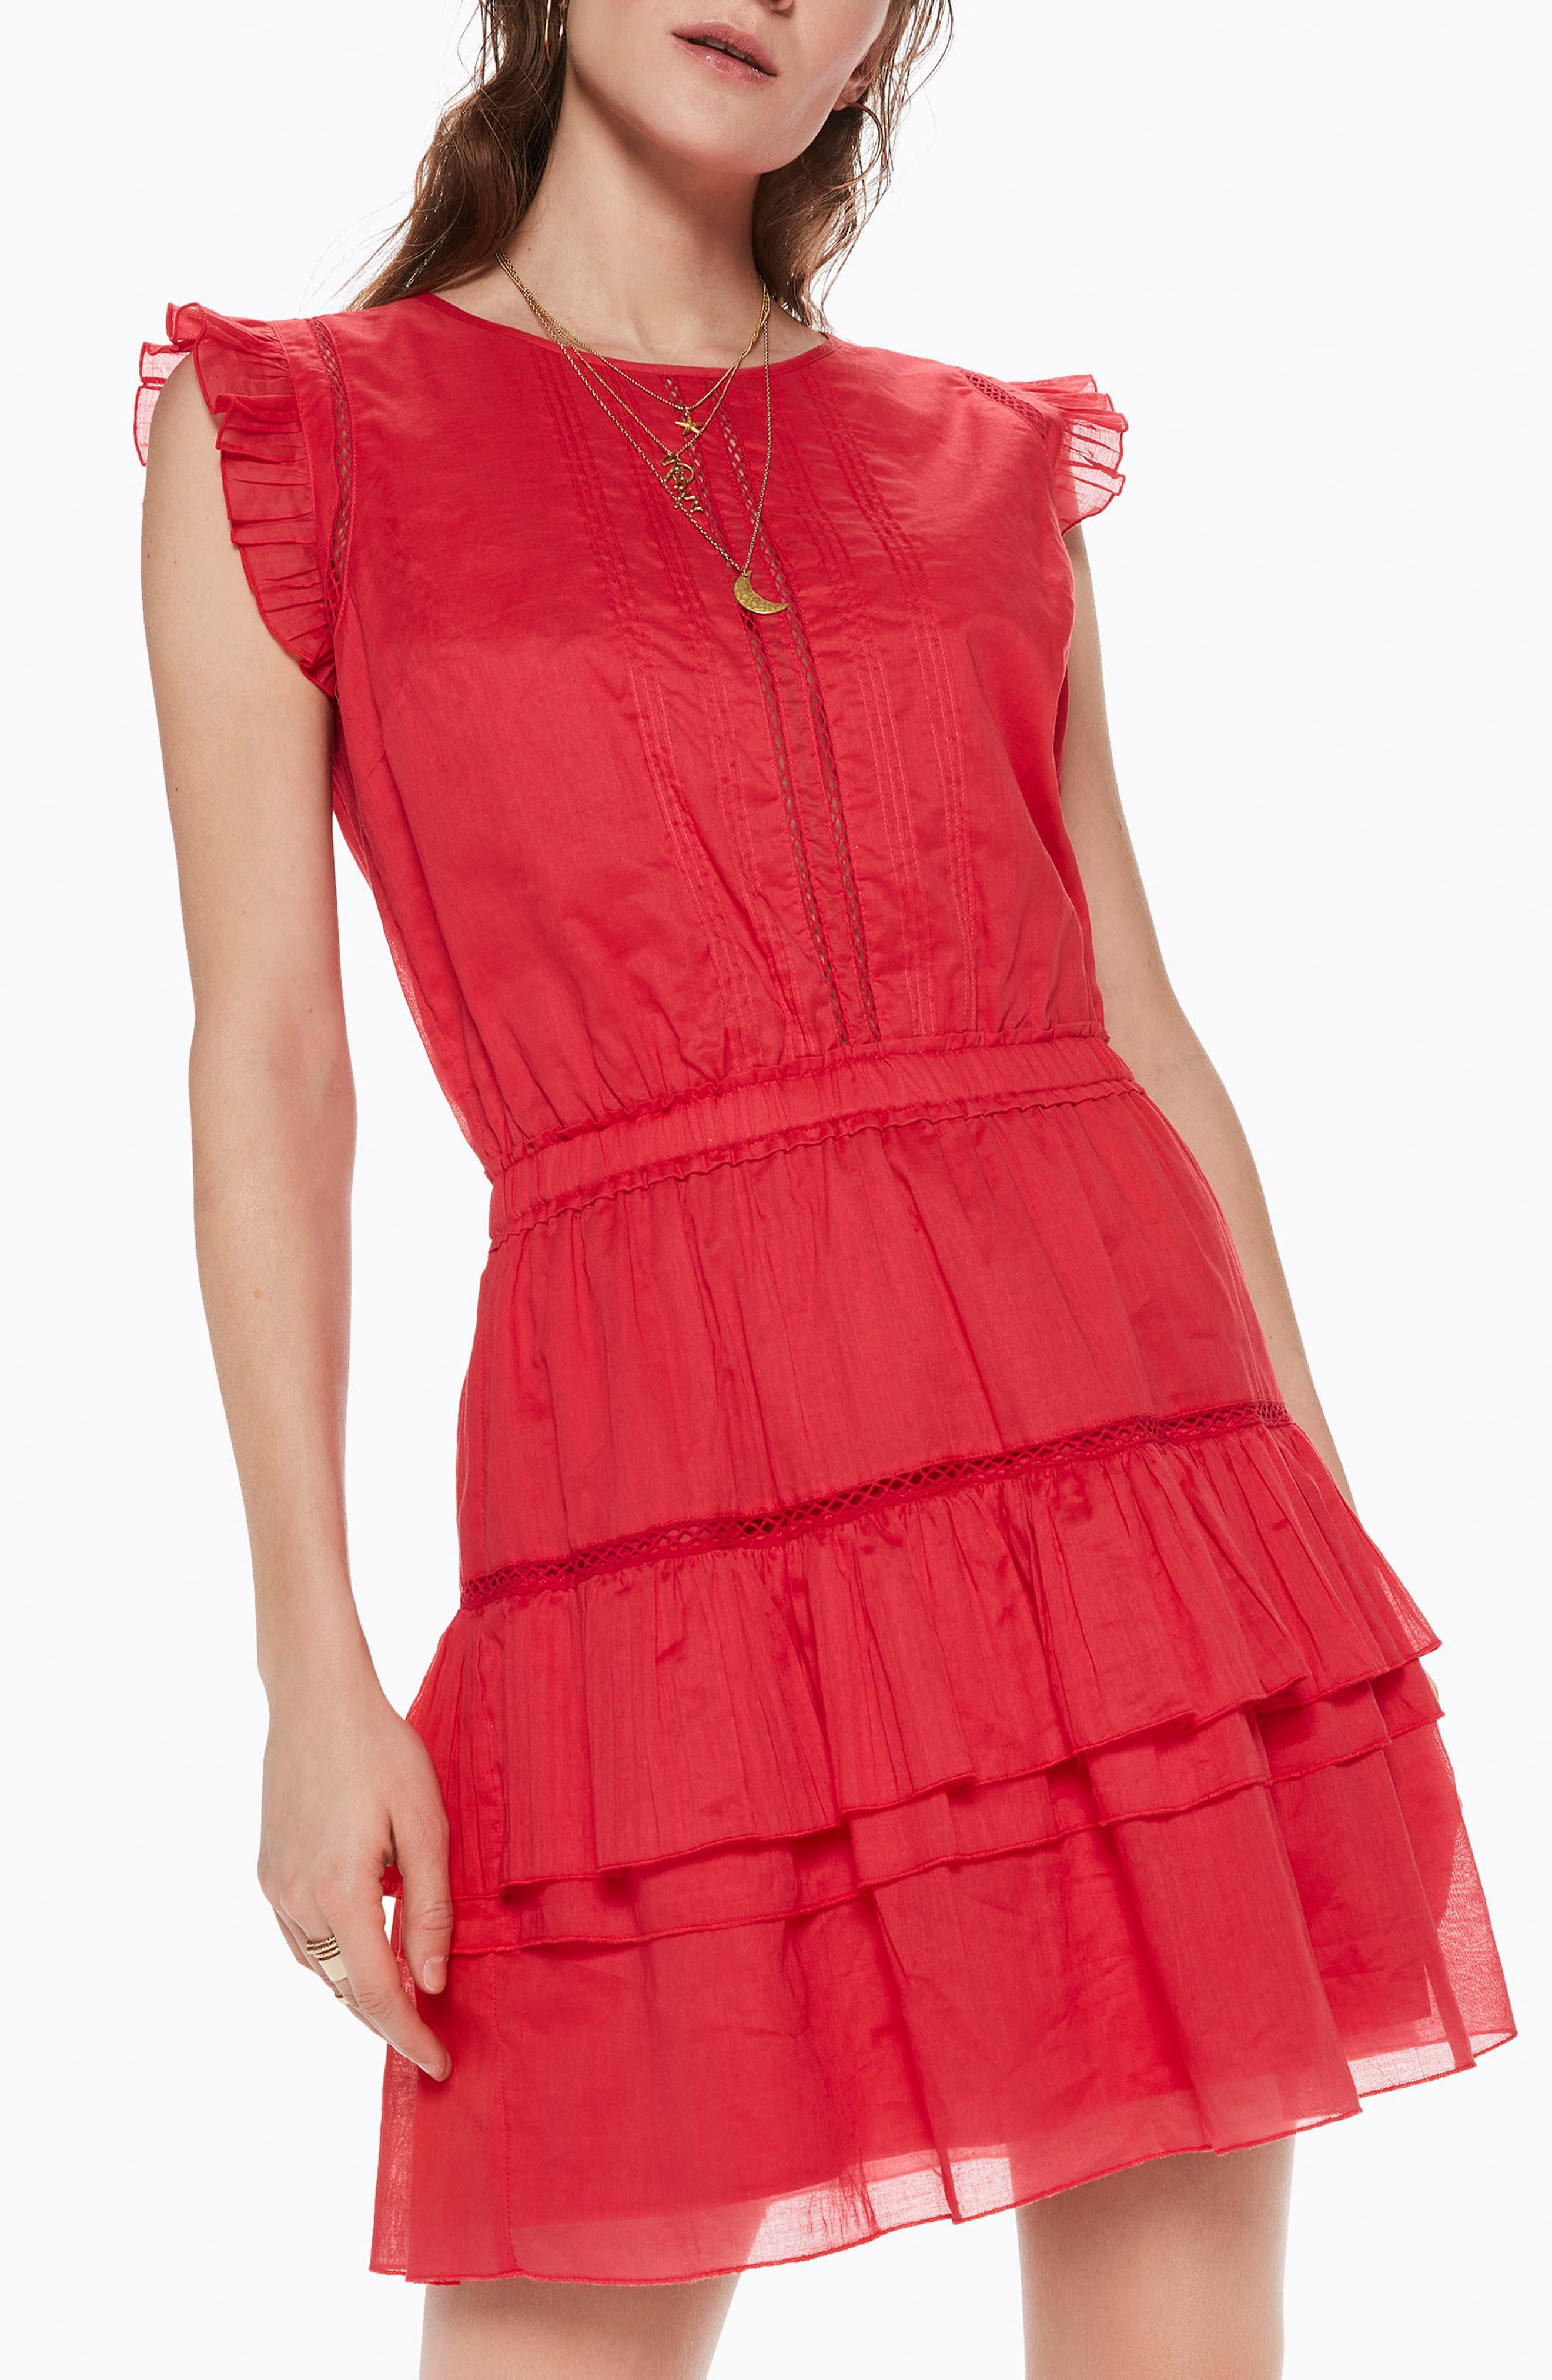 Tiered Sleeveless Dress,                         Main,                         color, Color 0406 Coral